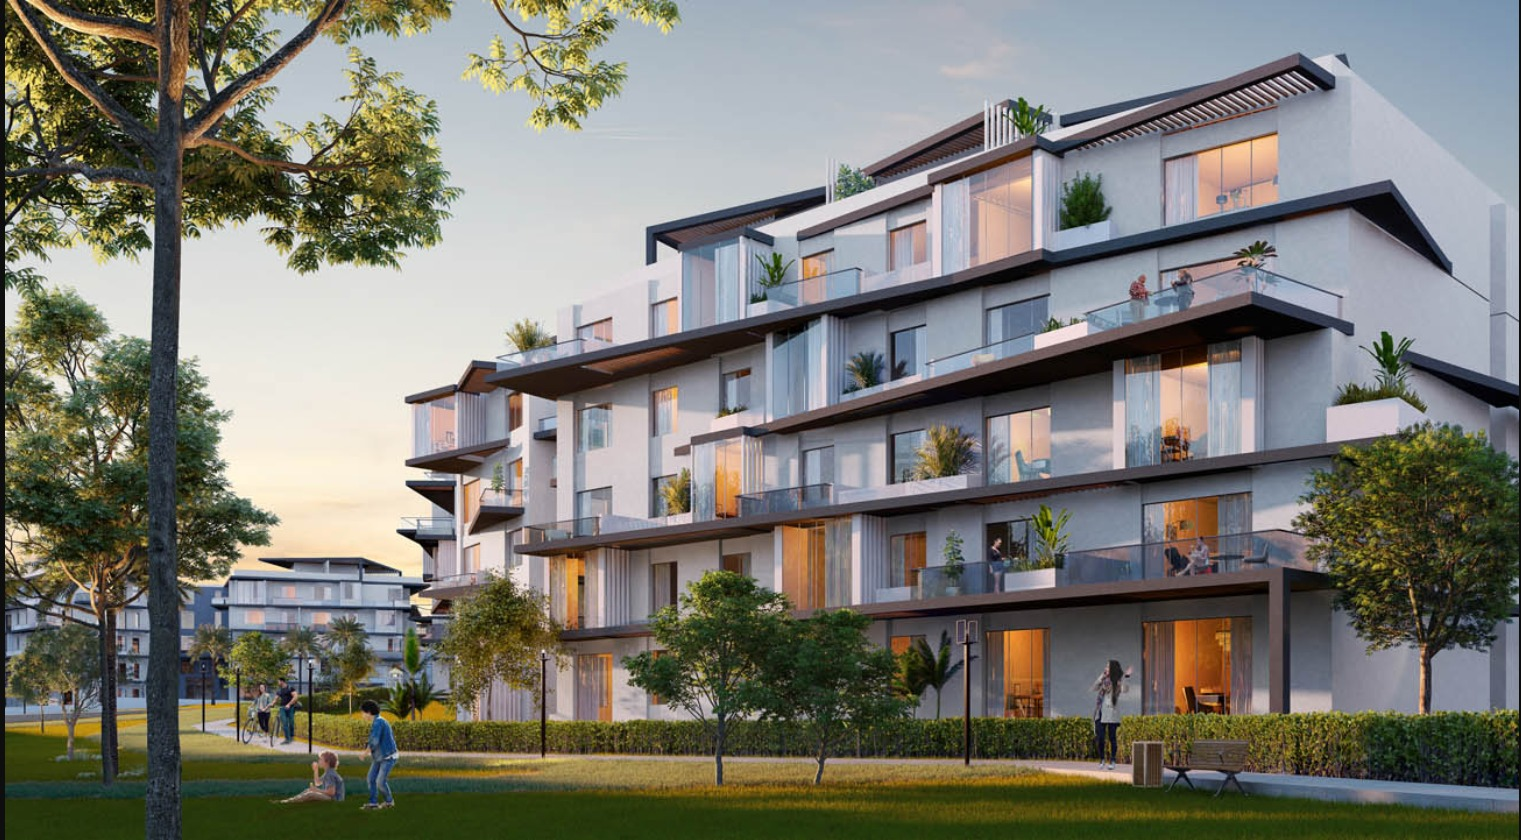 apartments for sale in villette